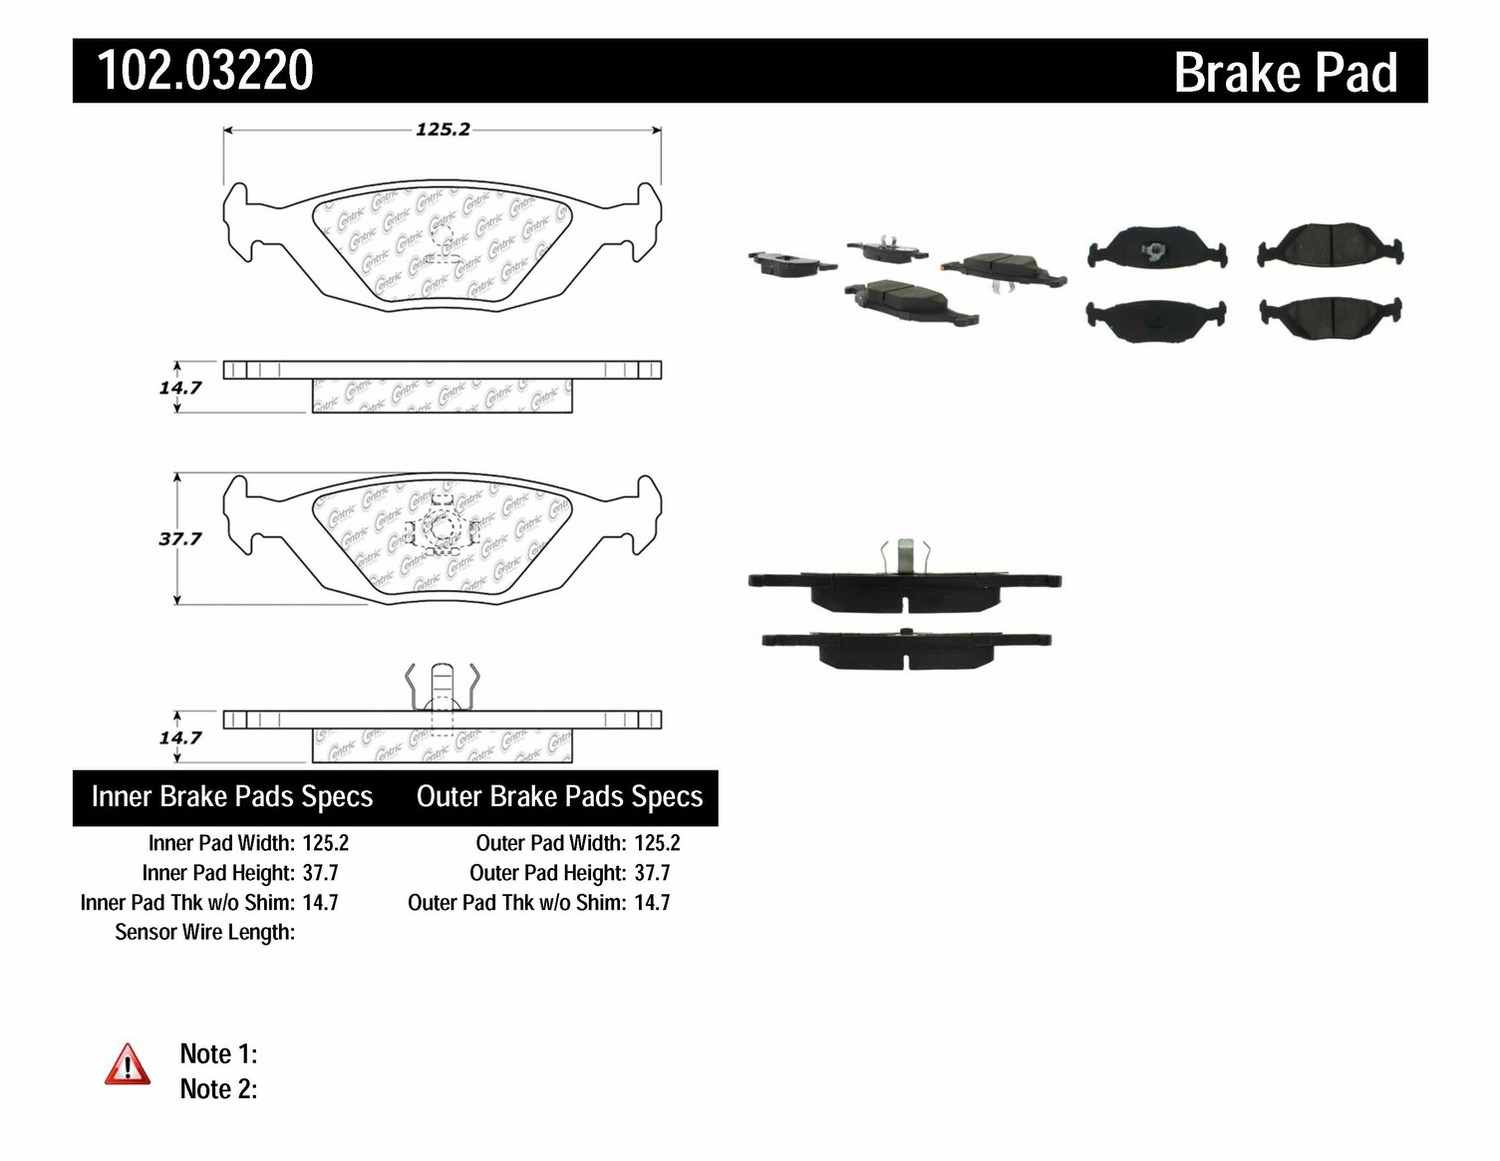 C-TEK BY CENTRIC - C-TEK Metallic Brake Pads (Rear) - CTK 102.03220